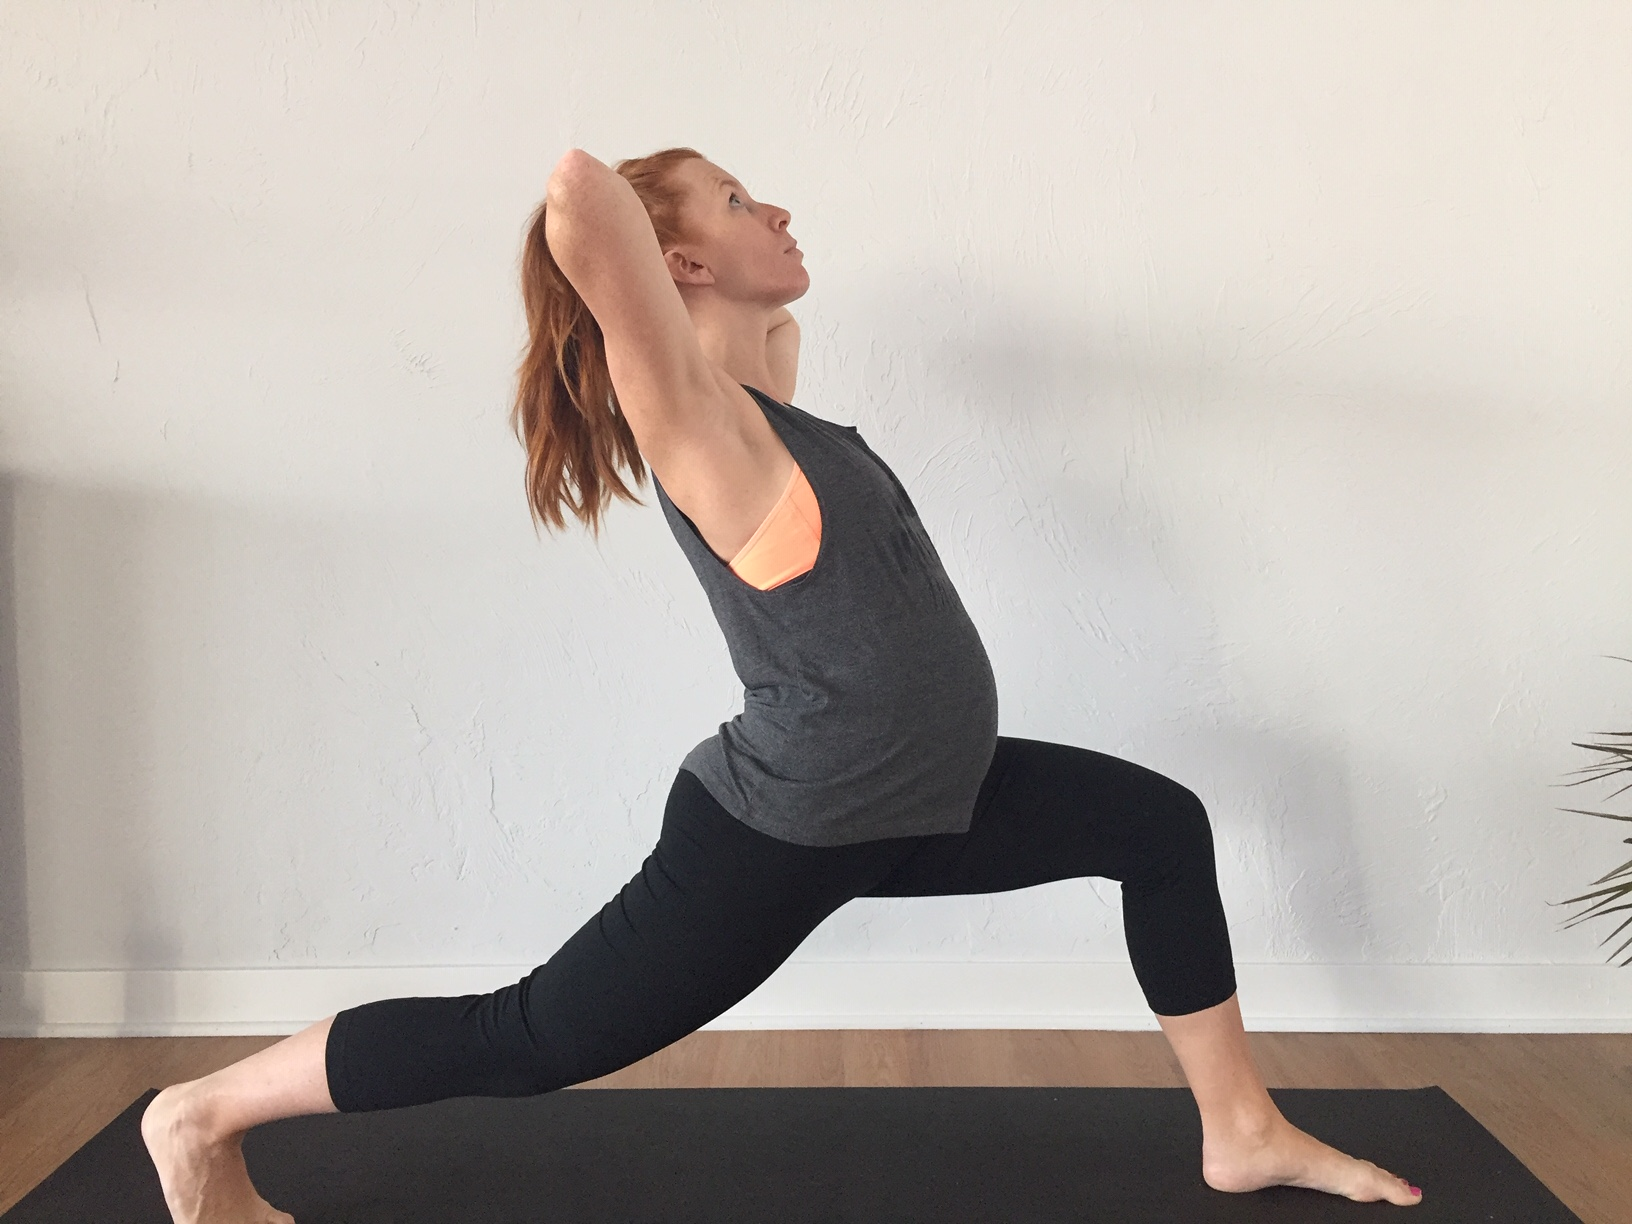 Back-bends can hide in almost every pose- notice how the belly is pushed forward, low back is compressed and the head is dropping back. Watch for poses where you tend to over-stretch and adjust your core so that it's better alignment. Your core will thank you later:)